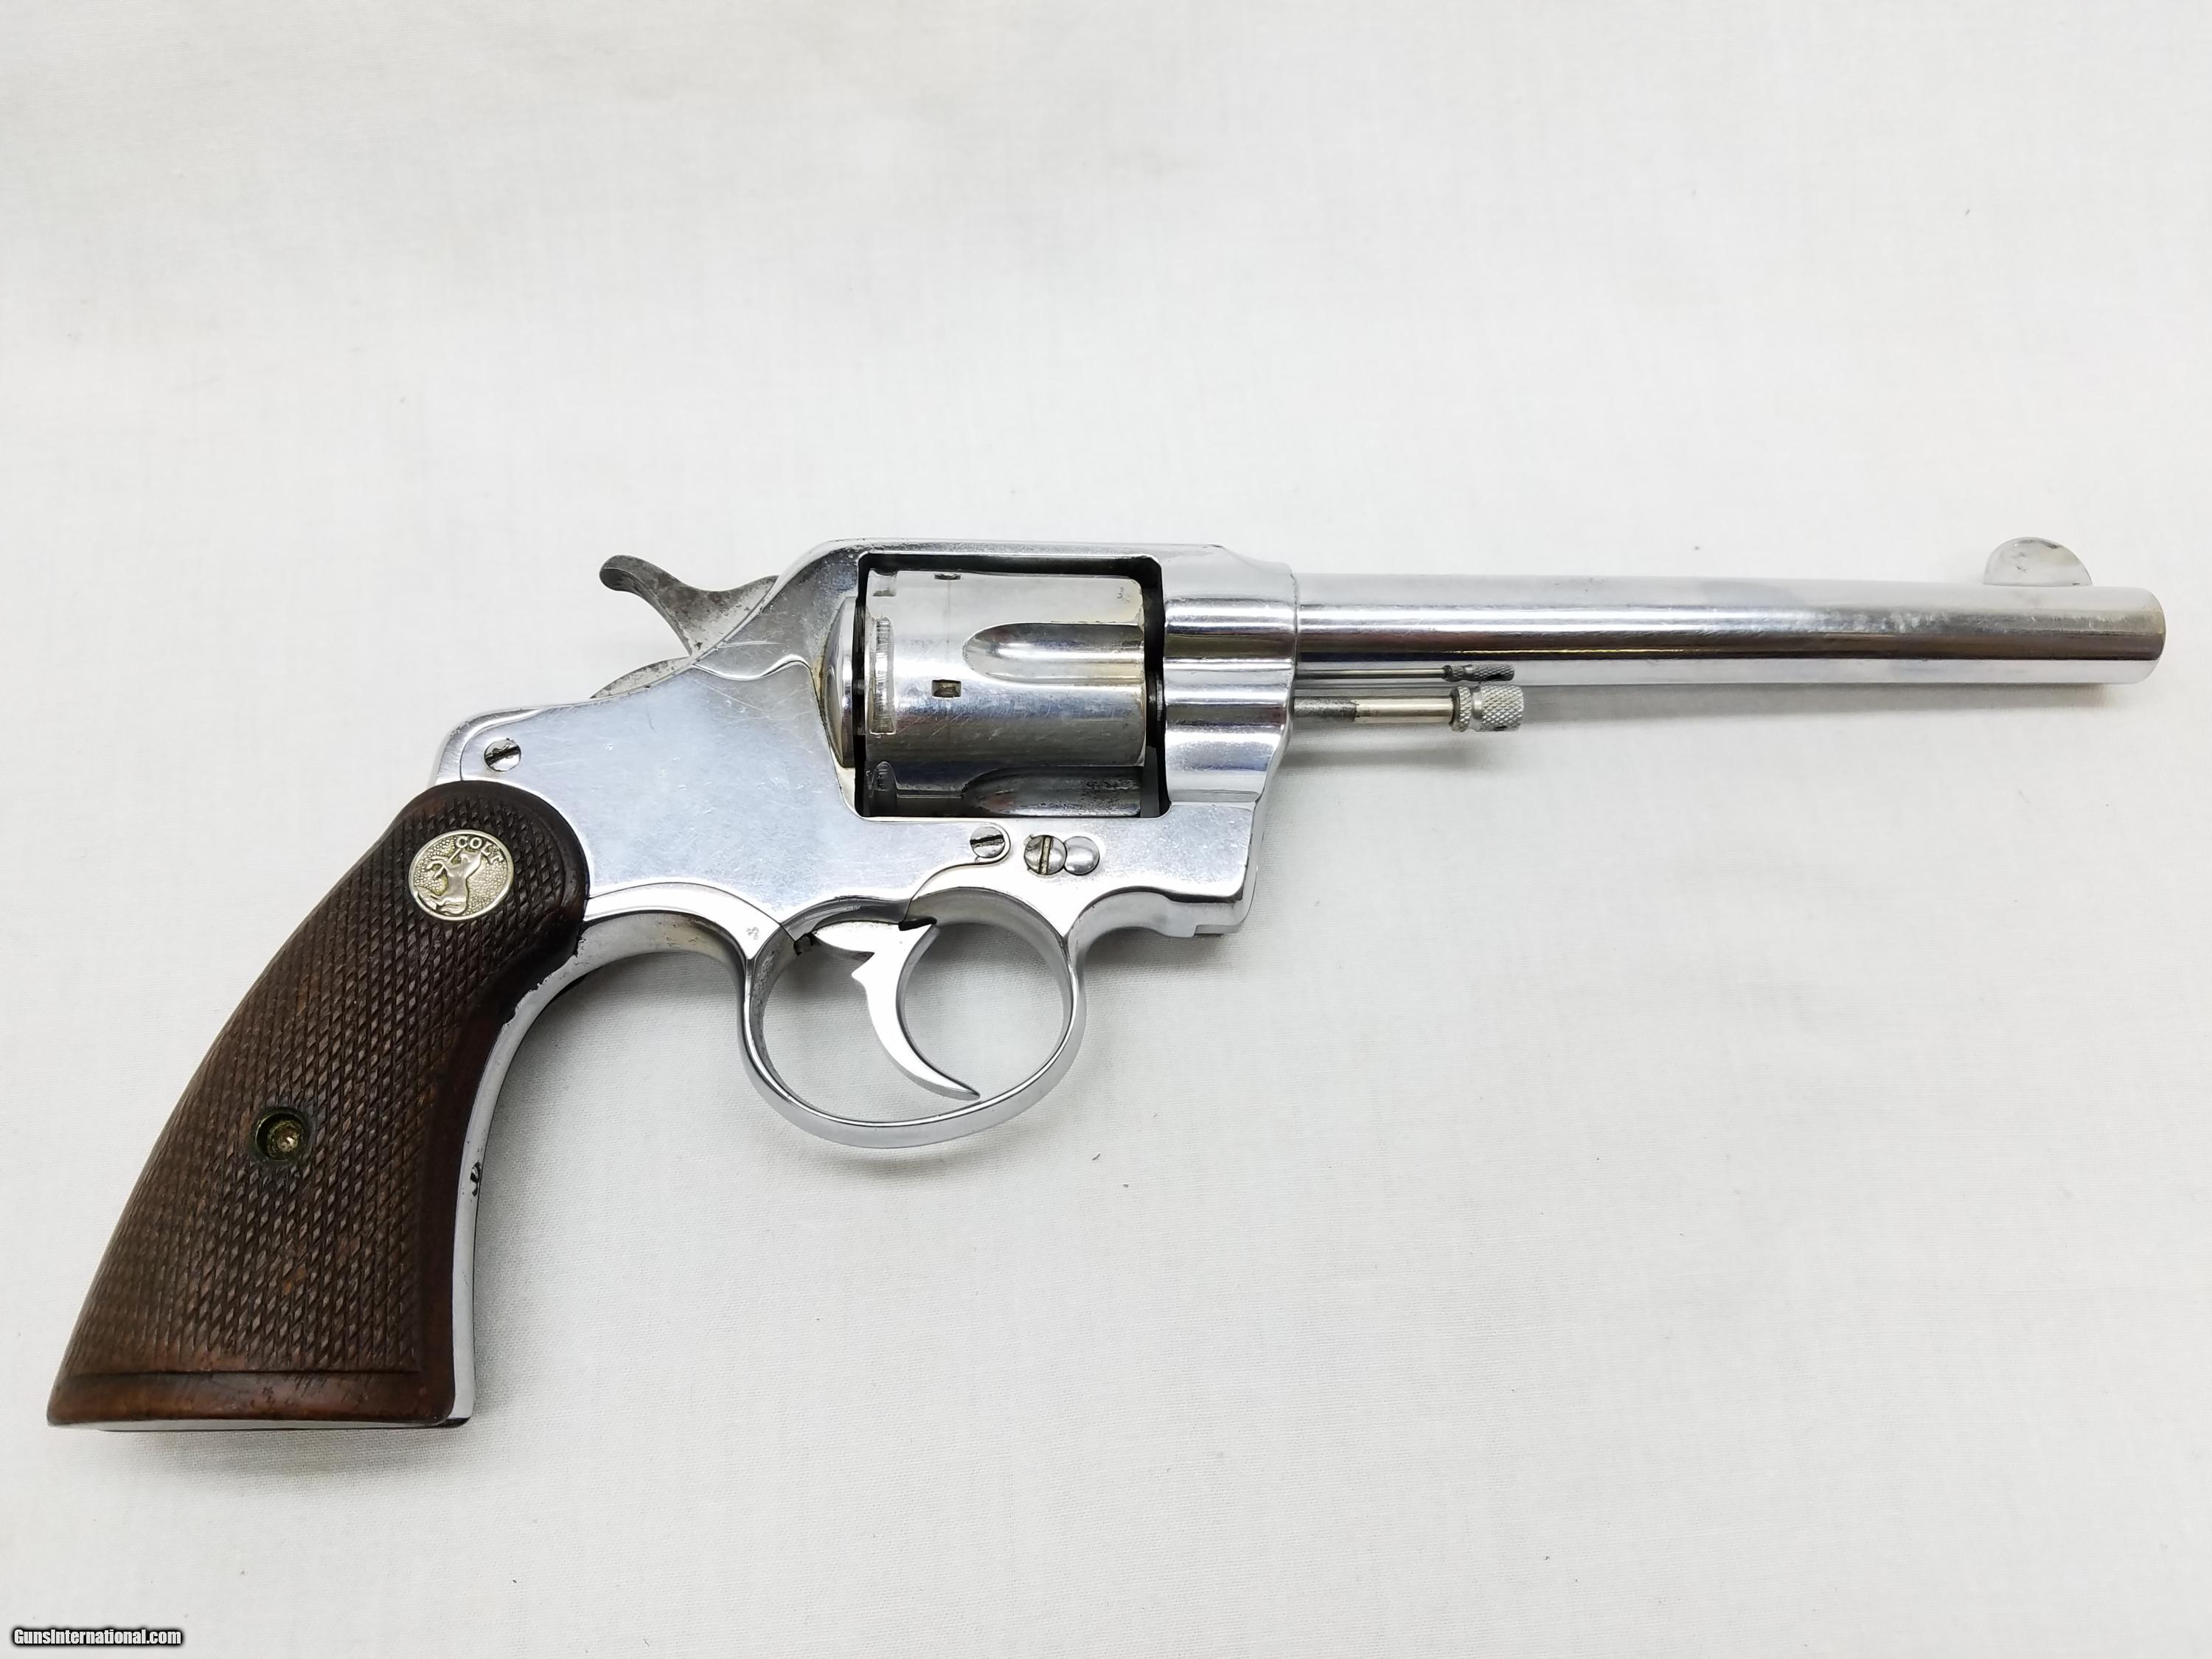 Colt D.A. 38 Nickel Double Action Revolver